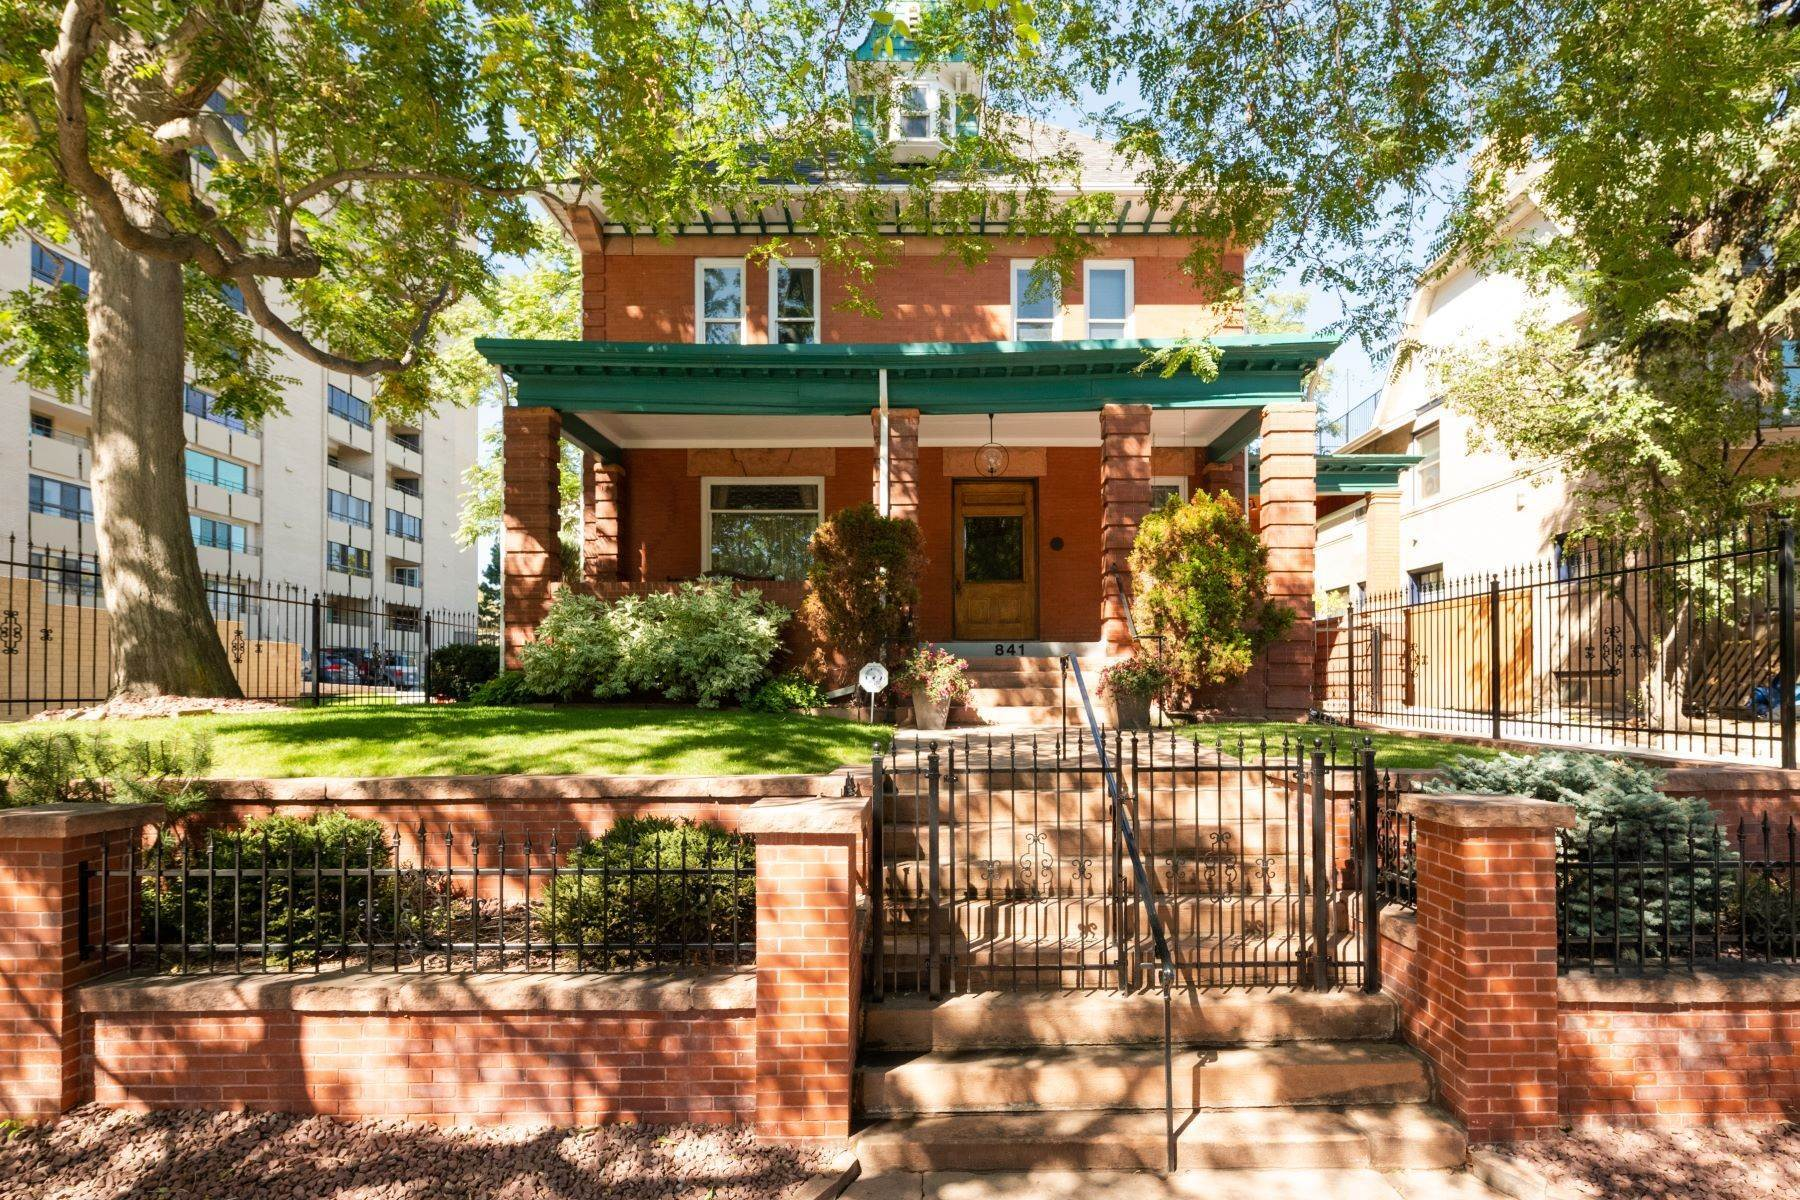 Property for Active at 841 North Washington Street, Denver, CO 80203 841 North Washington Street Denver, Colorado 80203 United States